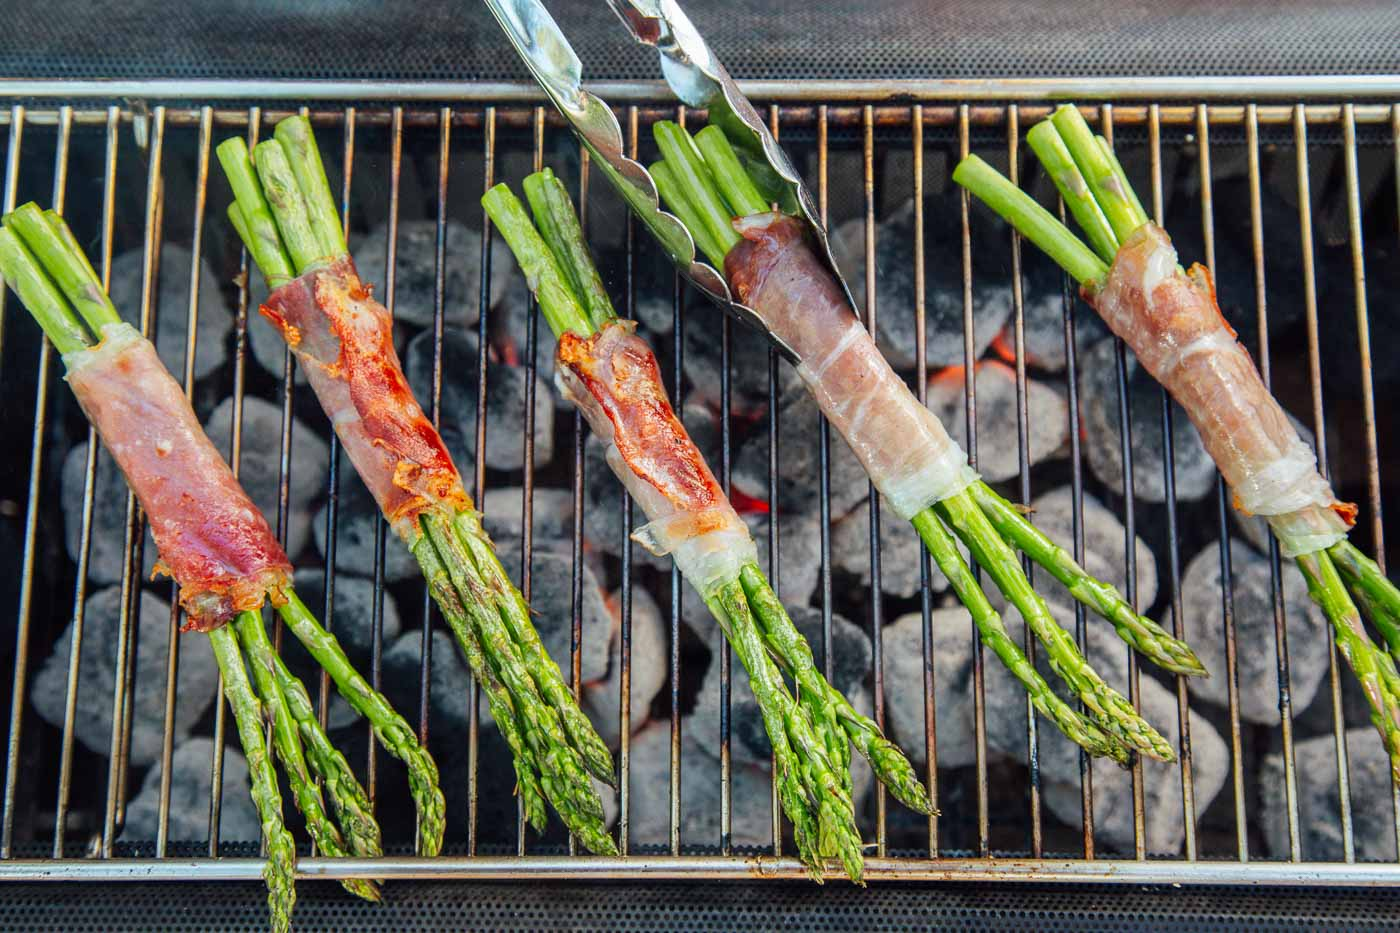 Prosciutto wrapped asparagus bundles on a grill